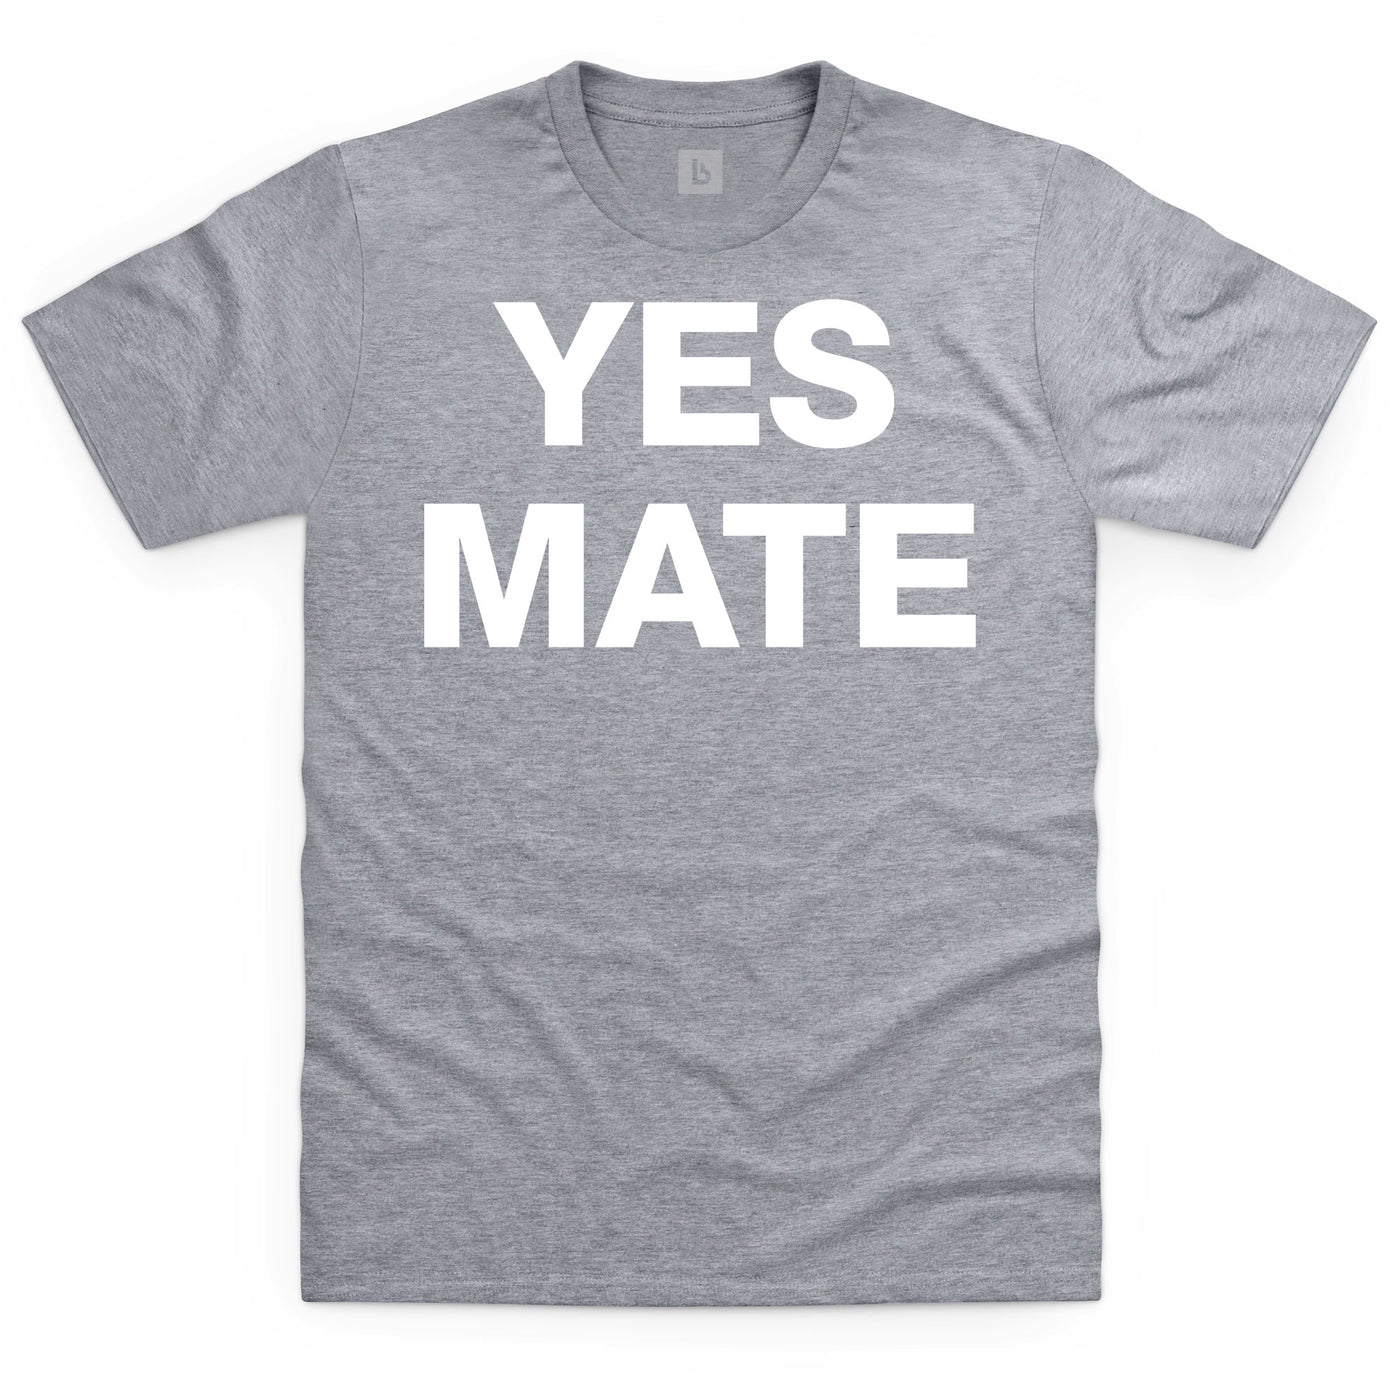 Style: Male, Color: Heather Grey.